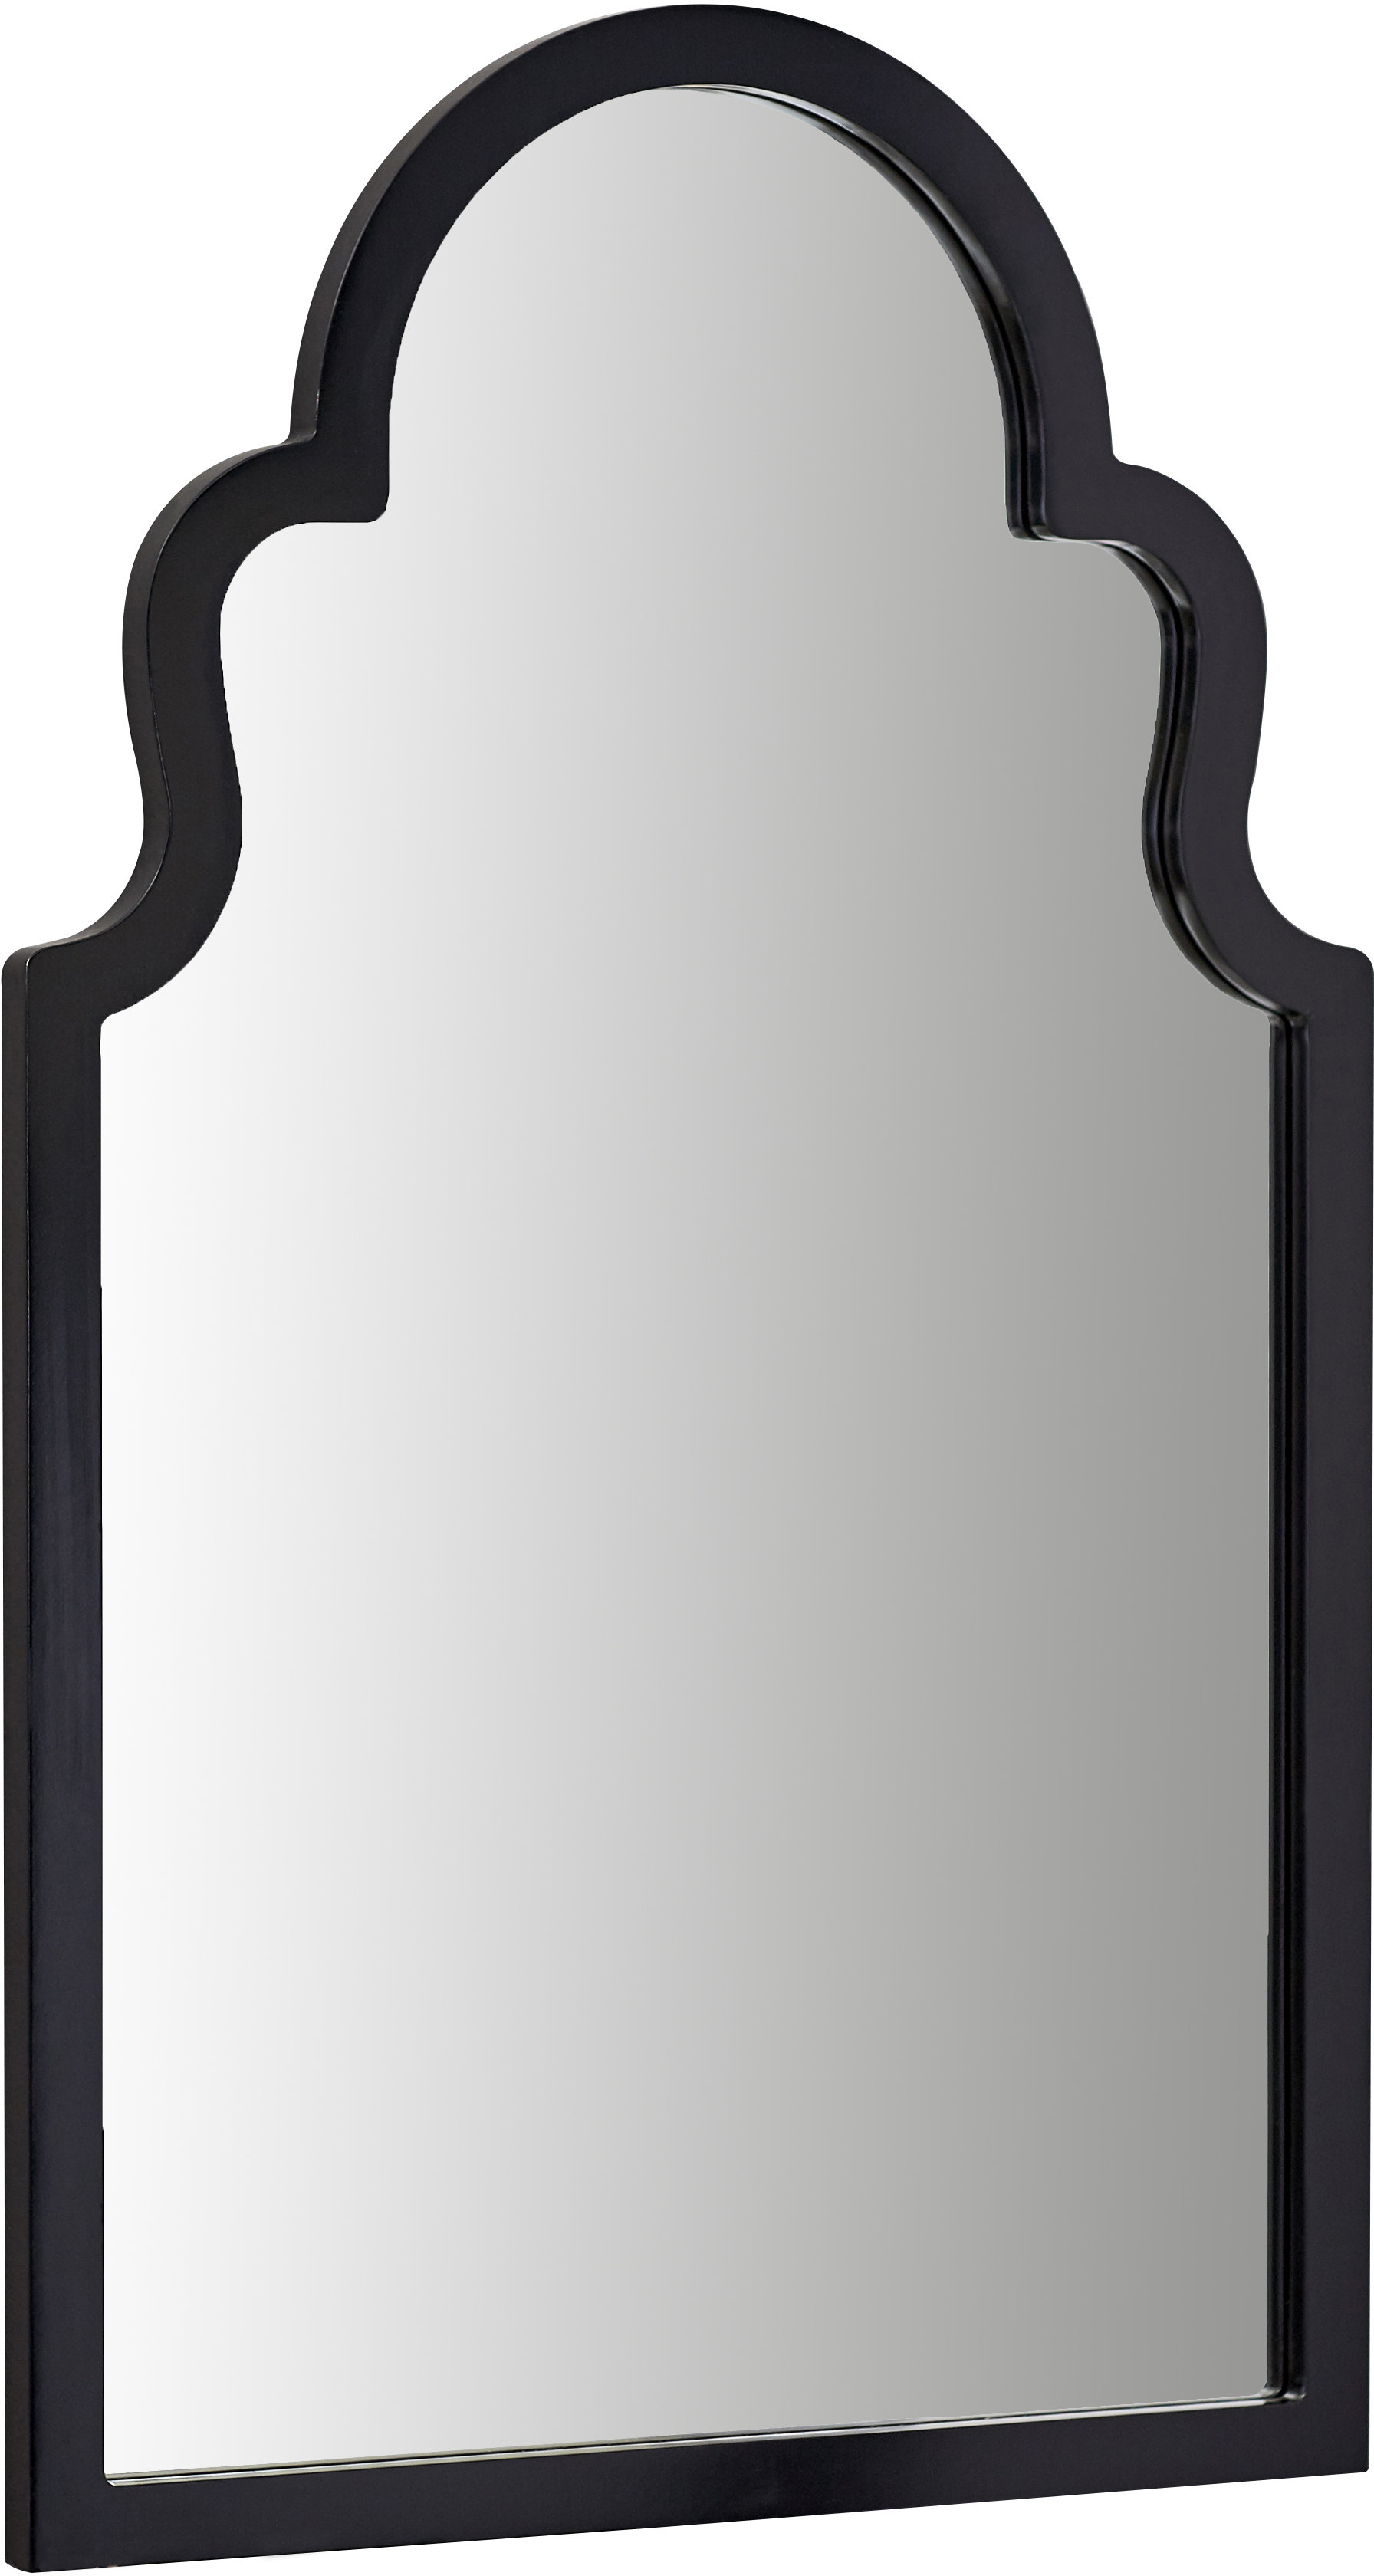 Willa Arlo Interiors Fifi Contemporary Arch Wall Mirror With Regard To Fashionable Dariel Tall Arched Scalloped Wall Mirrors (View 14 of 20)